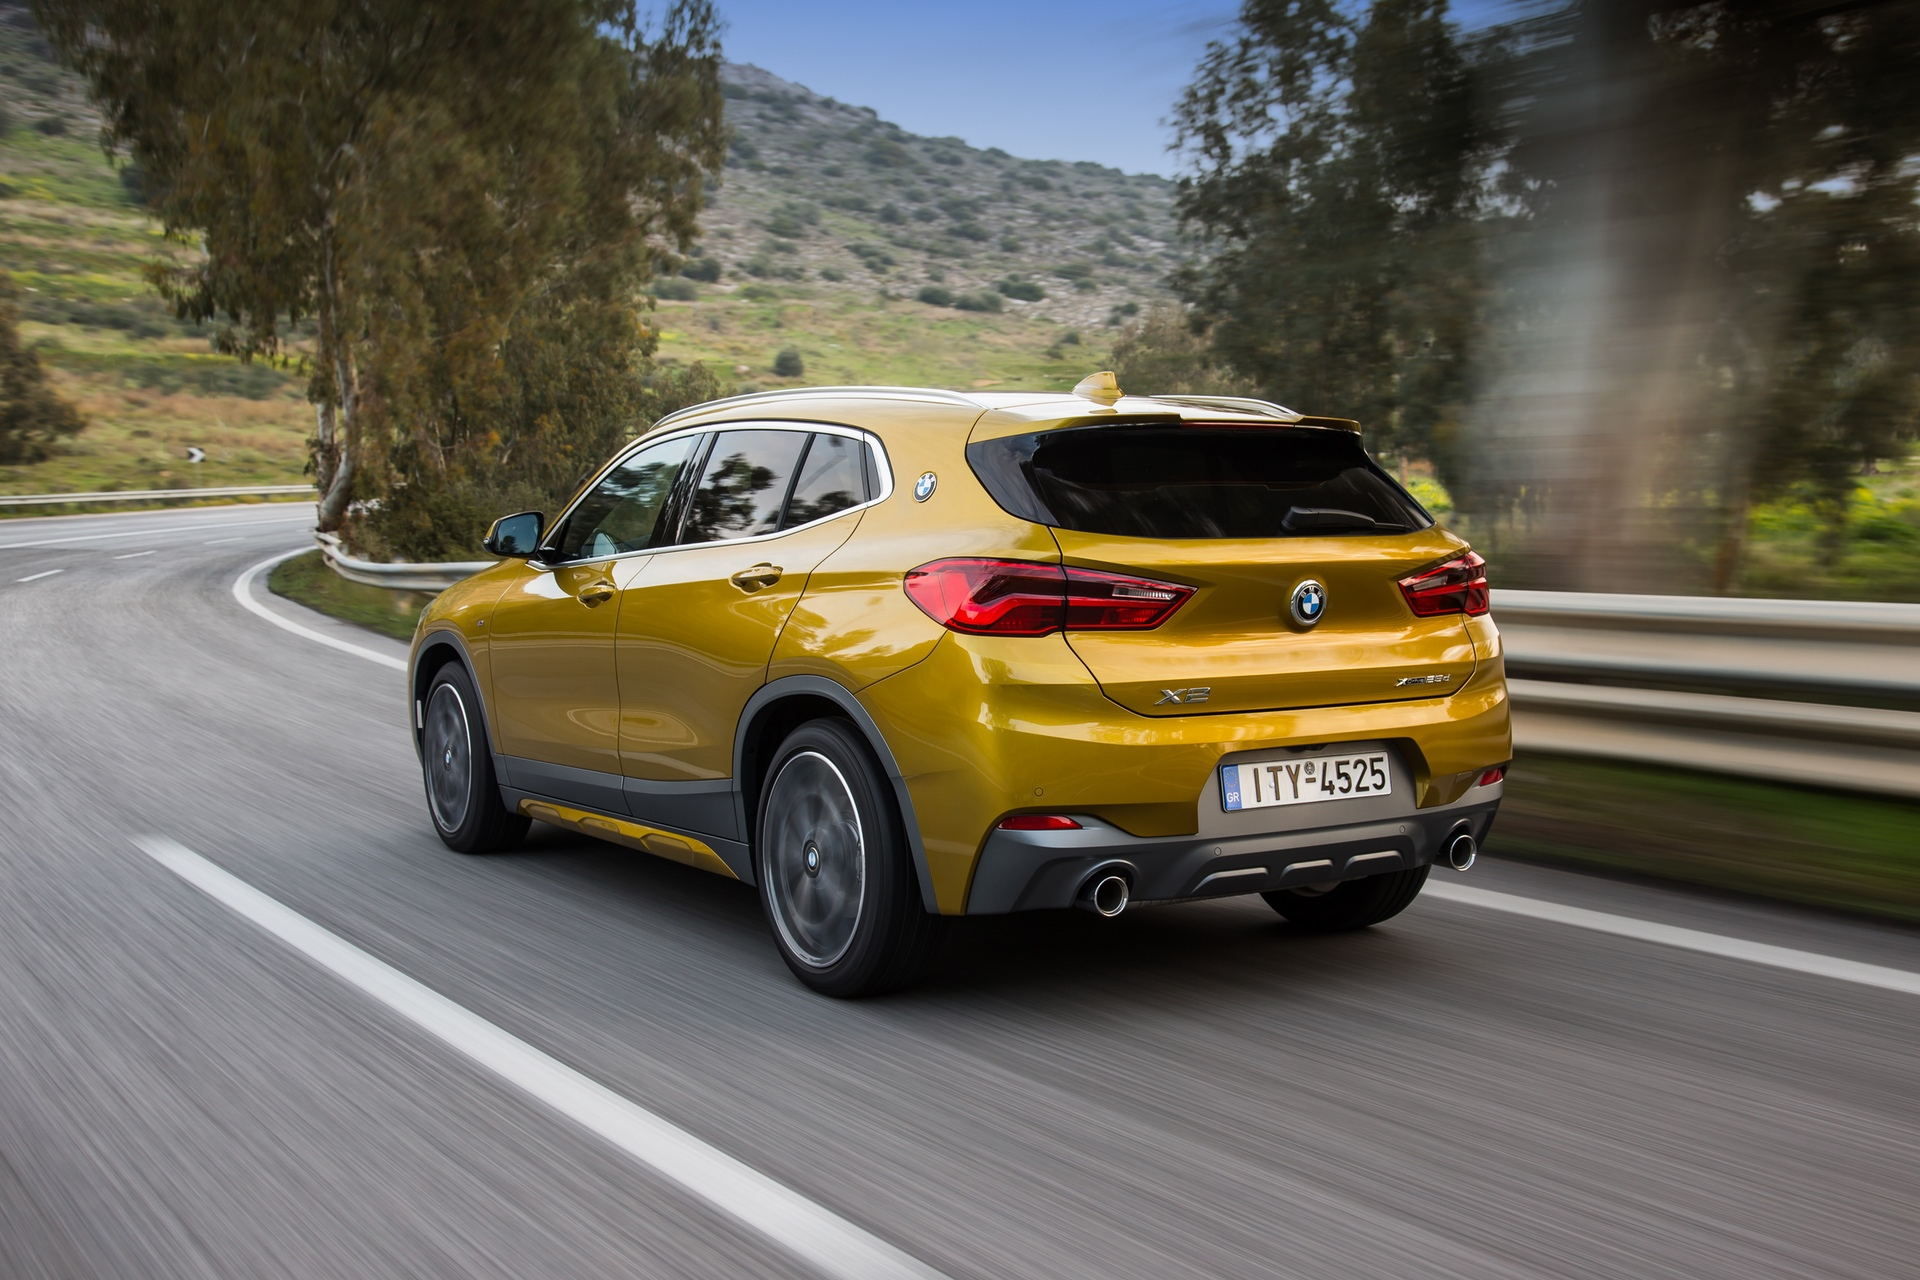 BMW_X2_Greek_presskit_0021